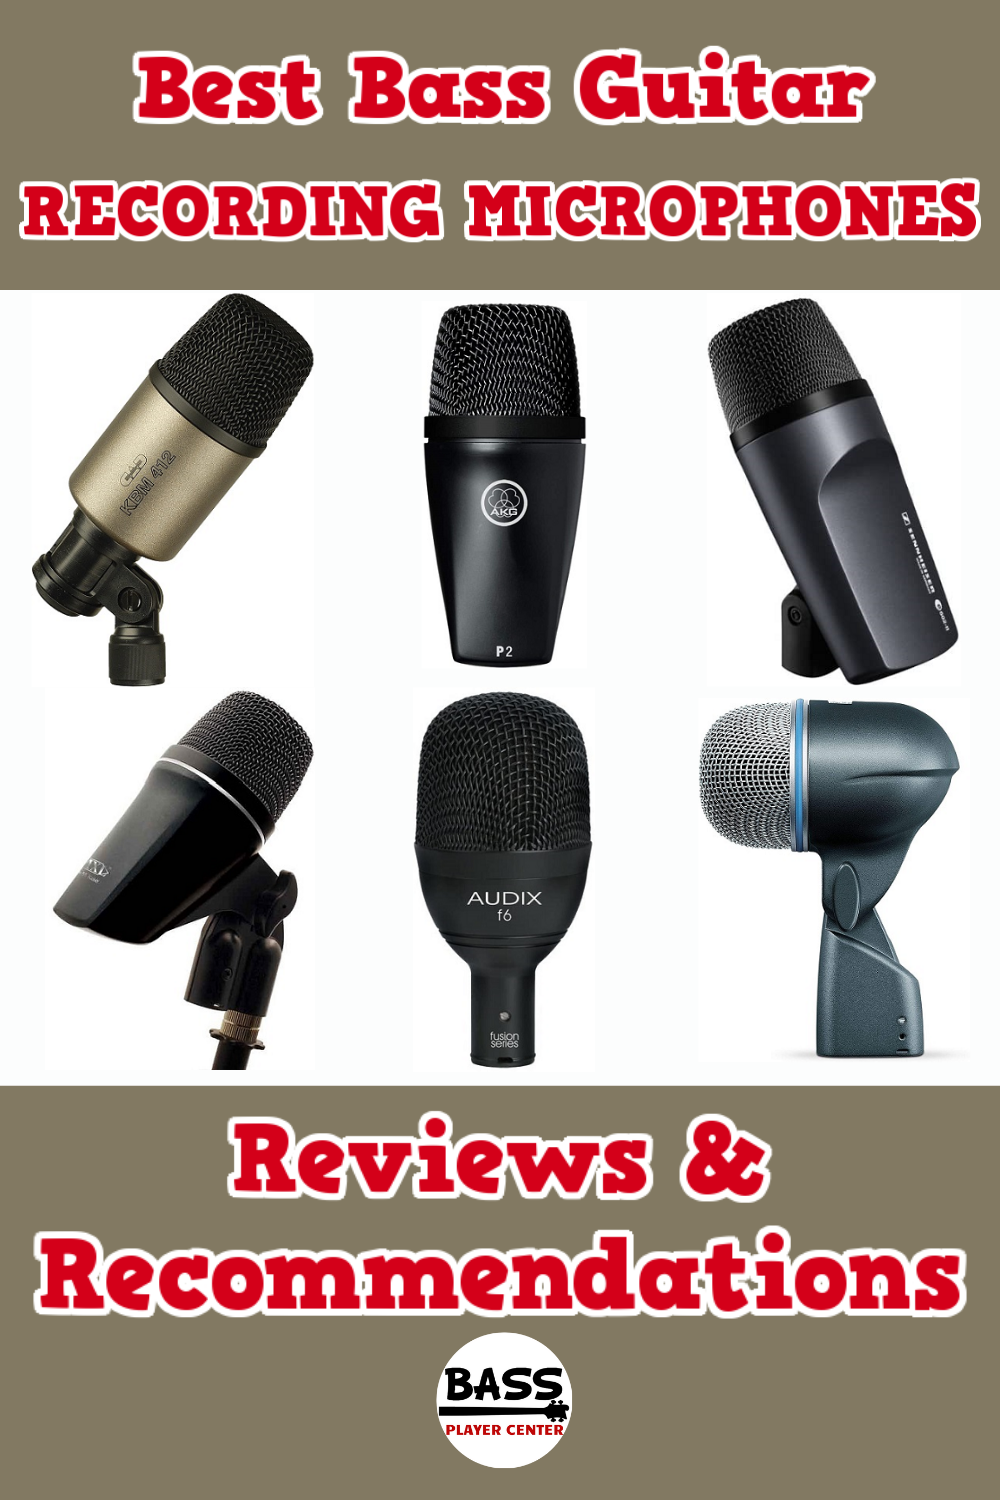 Best Bass Guitar Recording Microphones